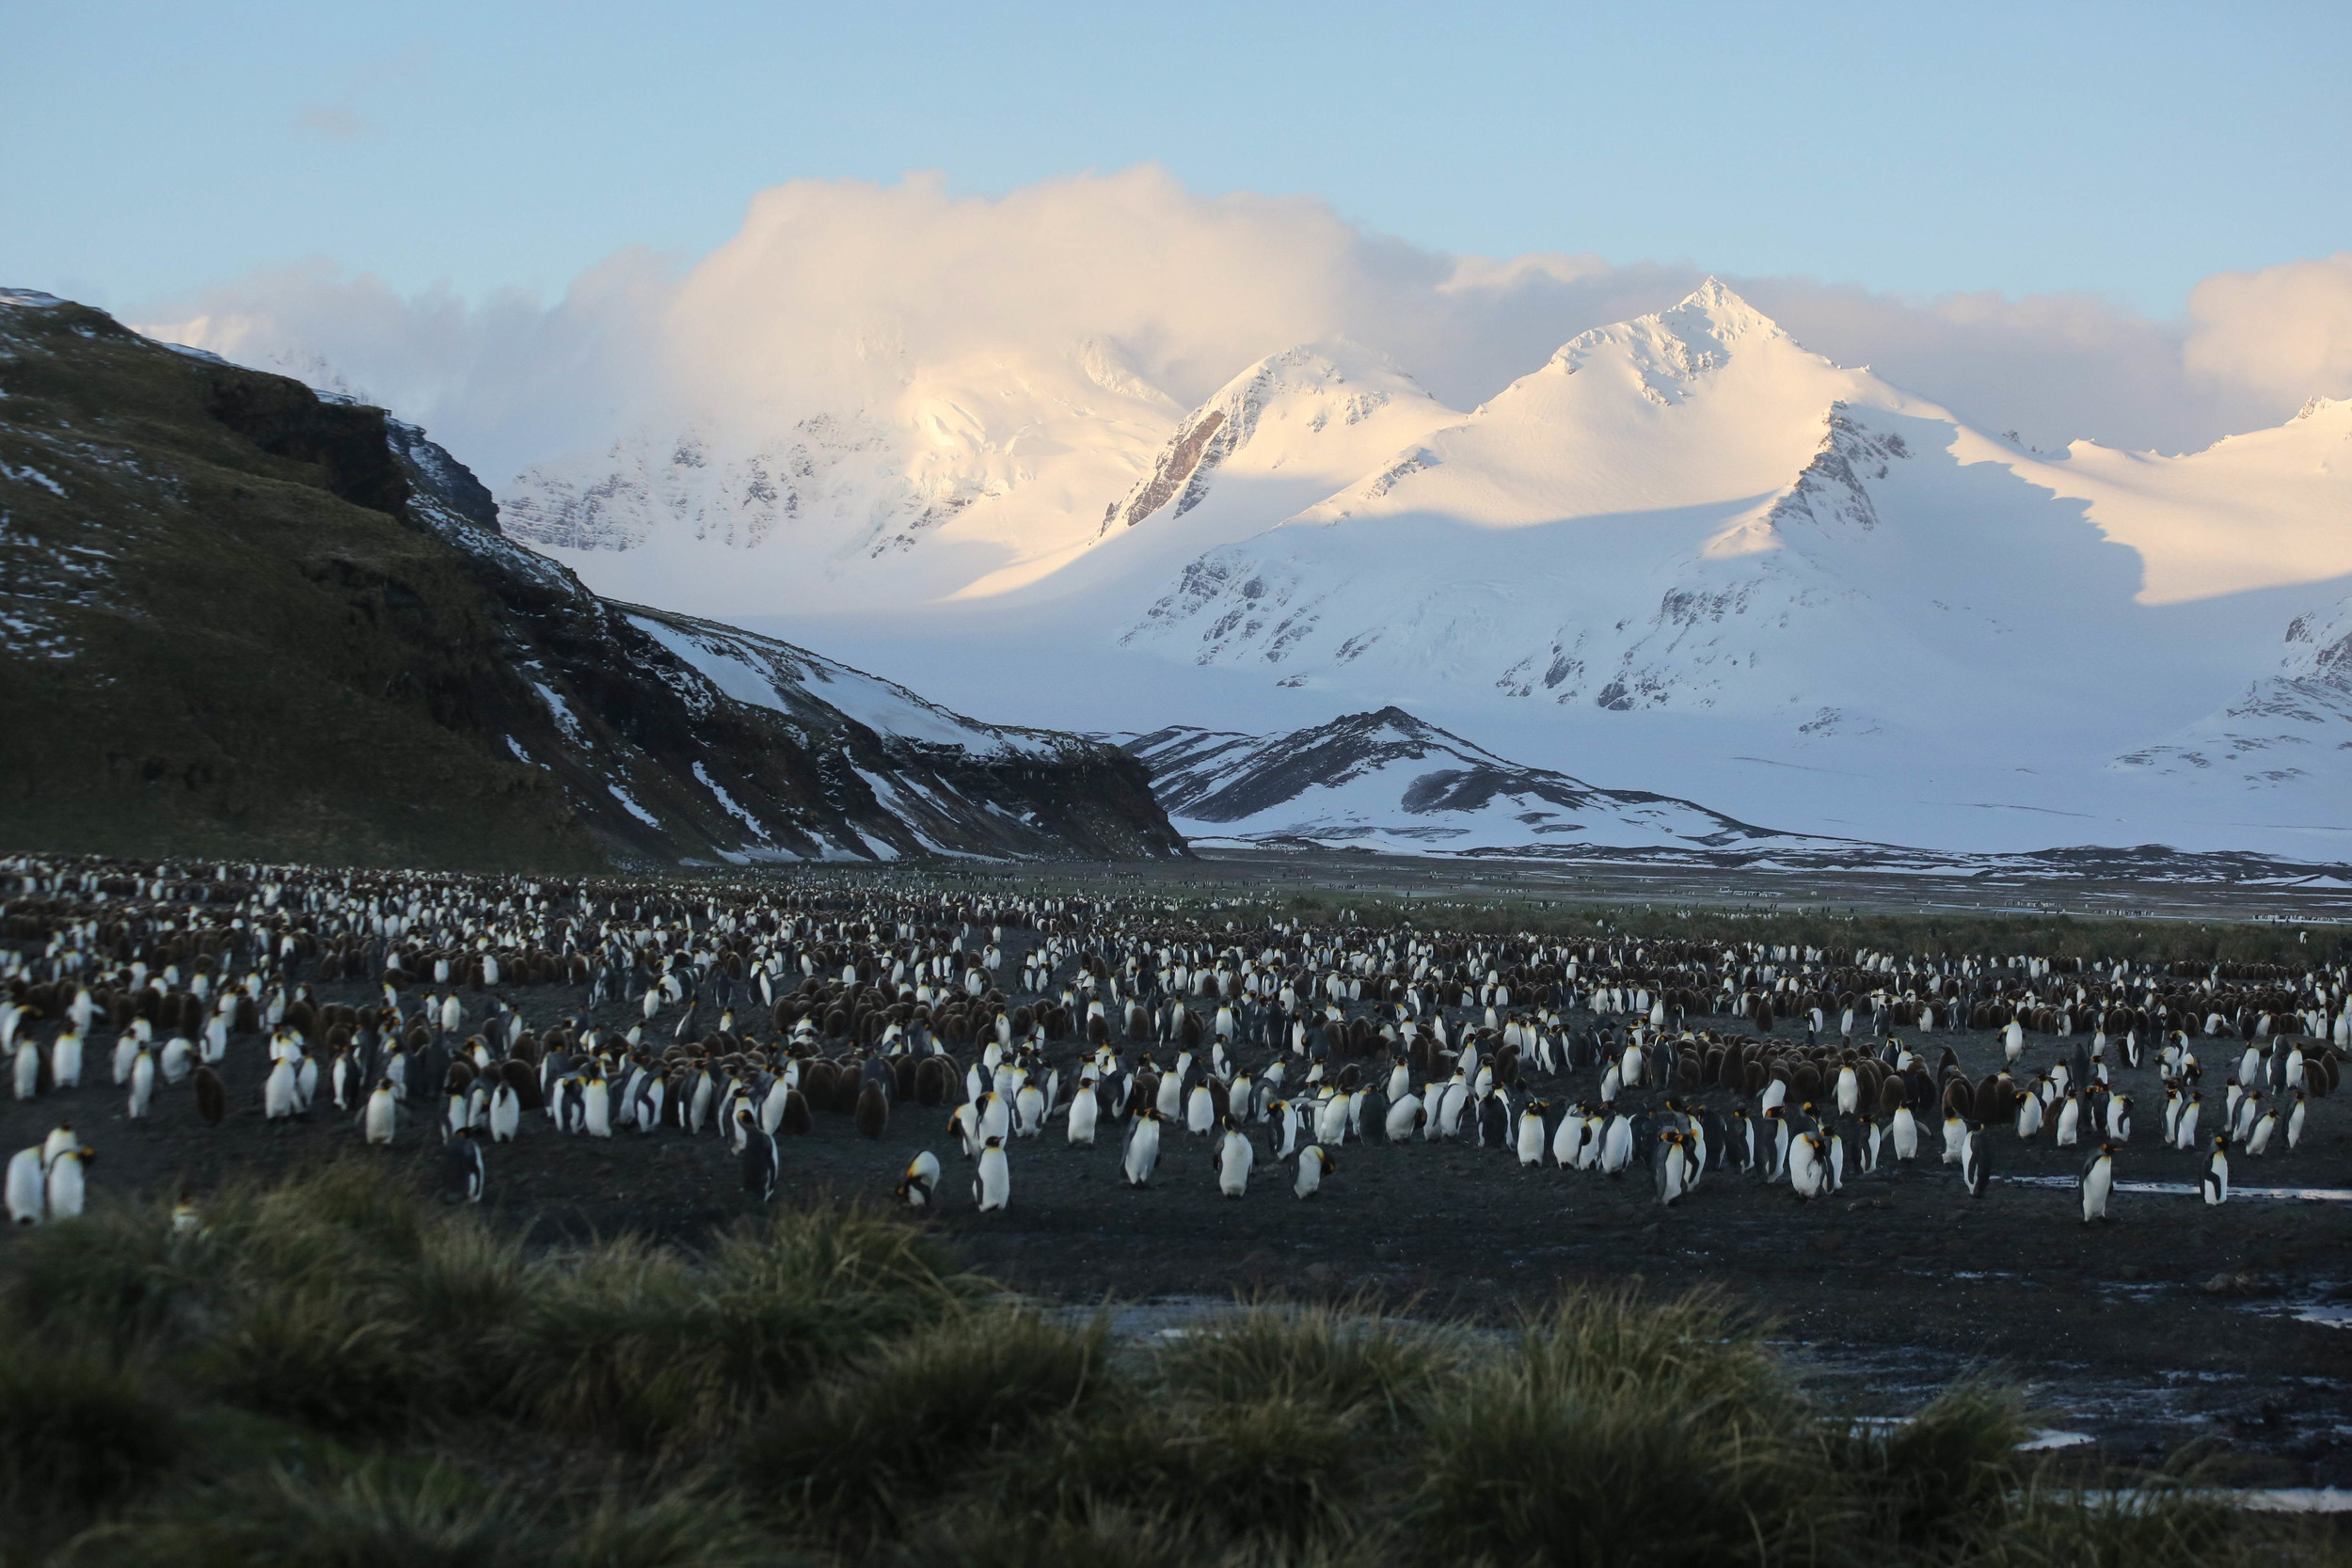 We arrived at Salisbury Plain on South Georgia Island in time to watch the Sun rise over a vast expanse of king penguins and elephant and fur seals.